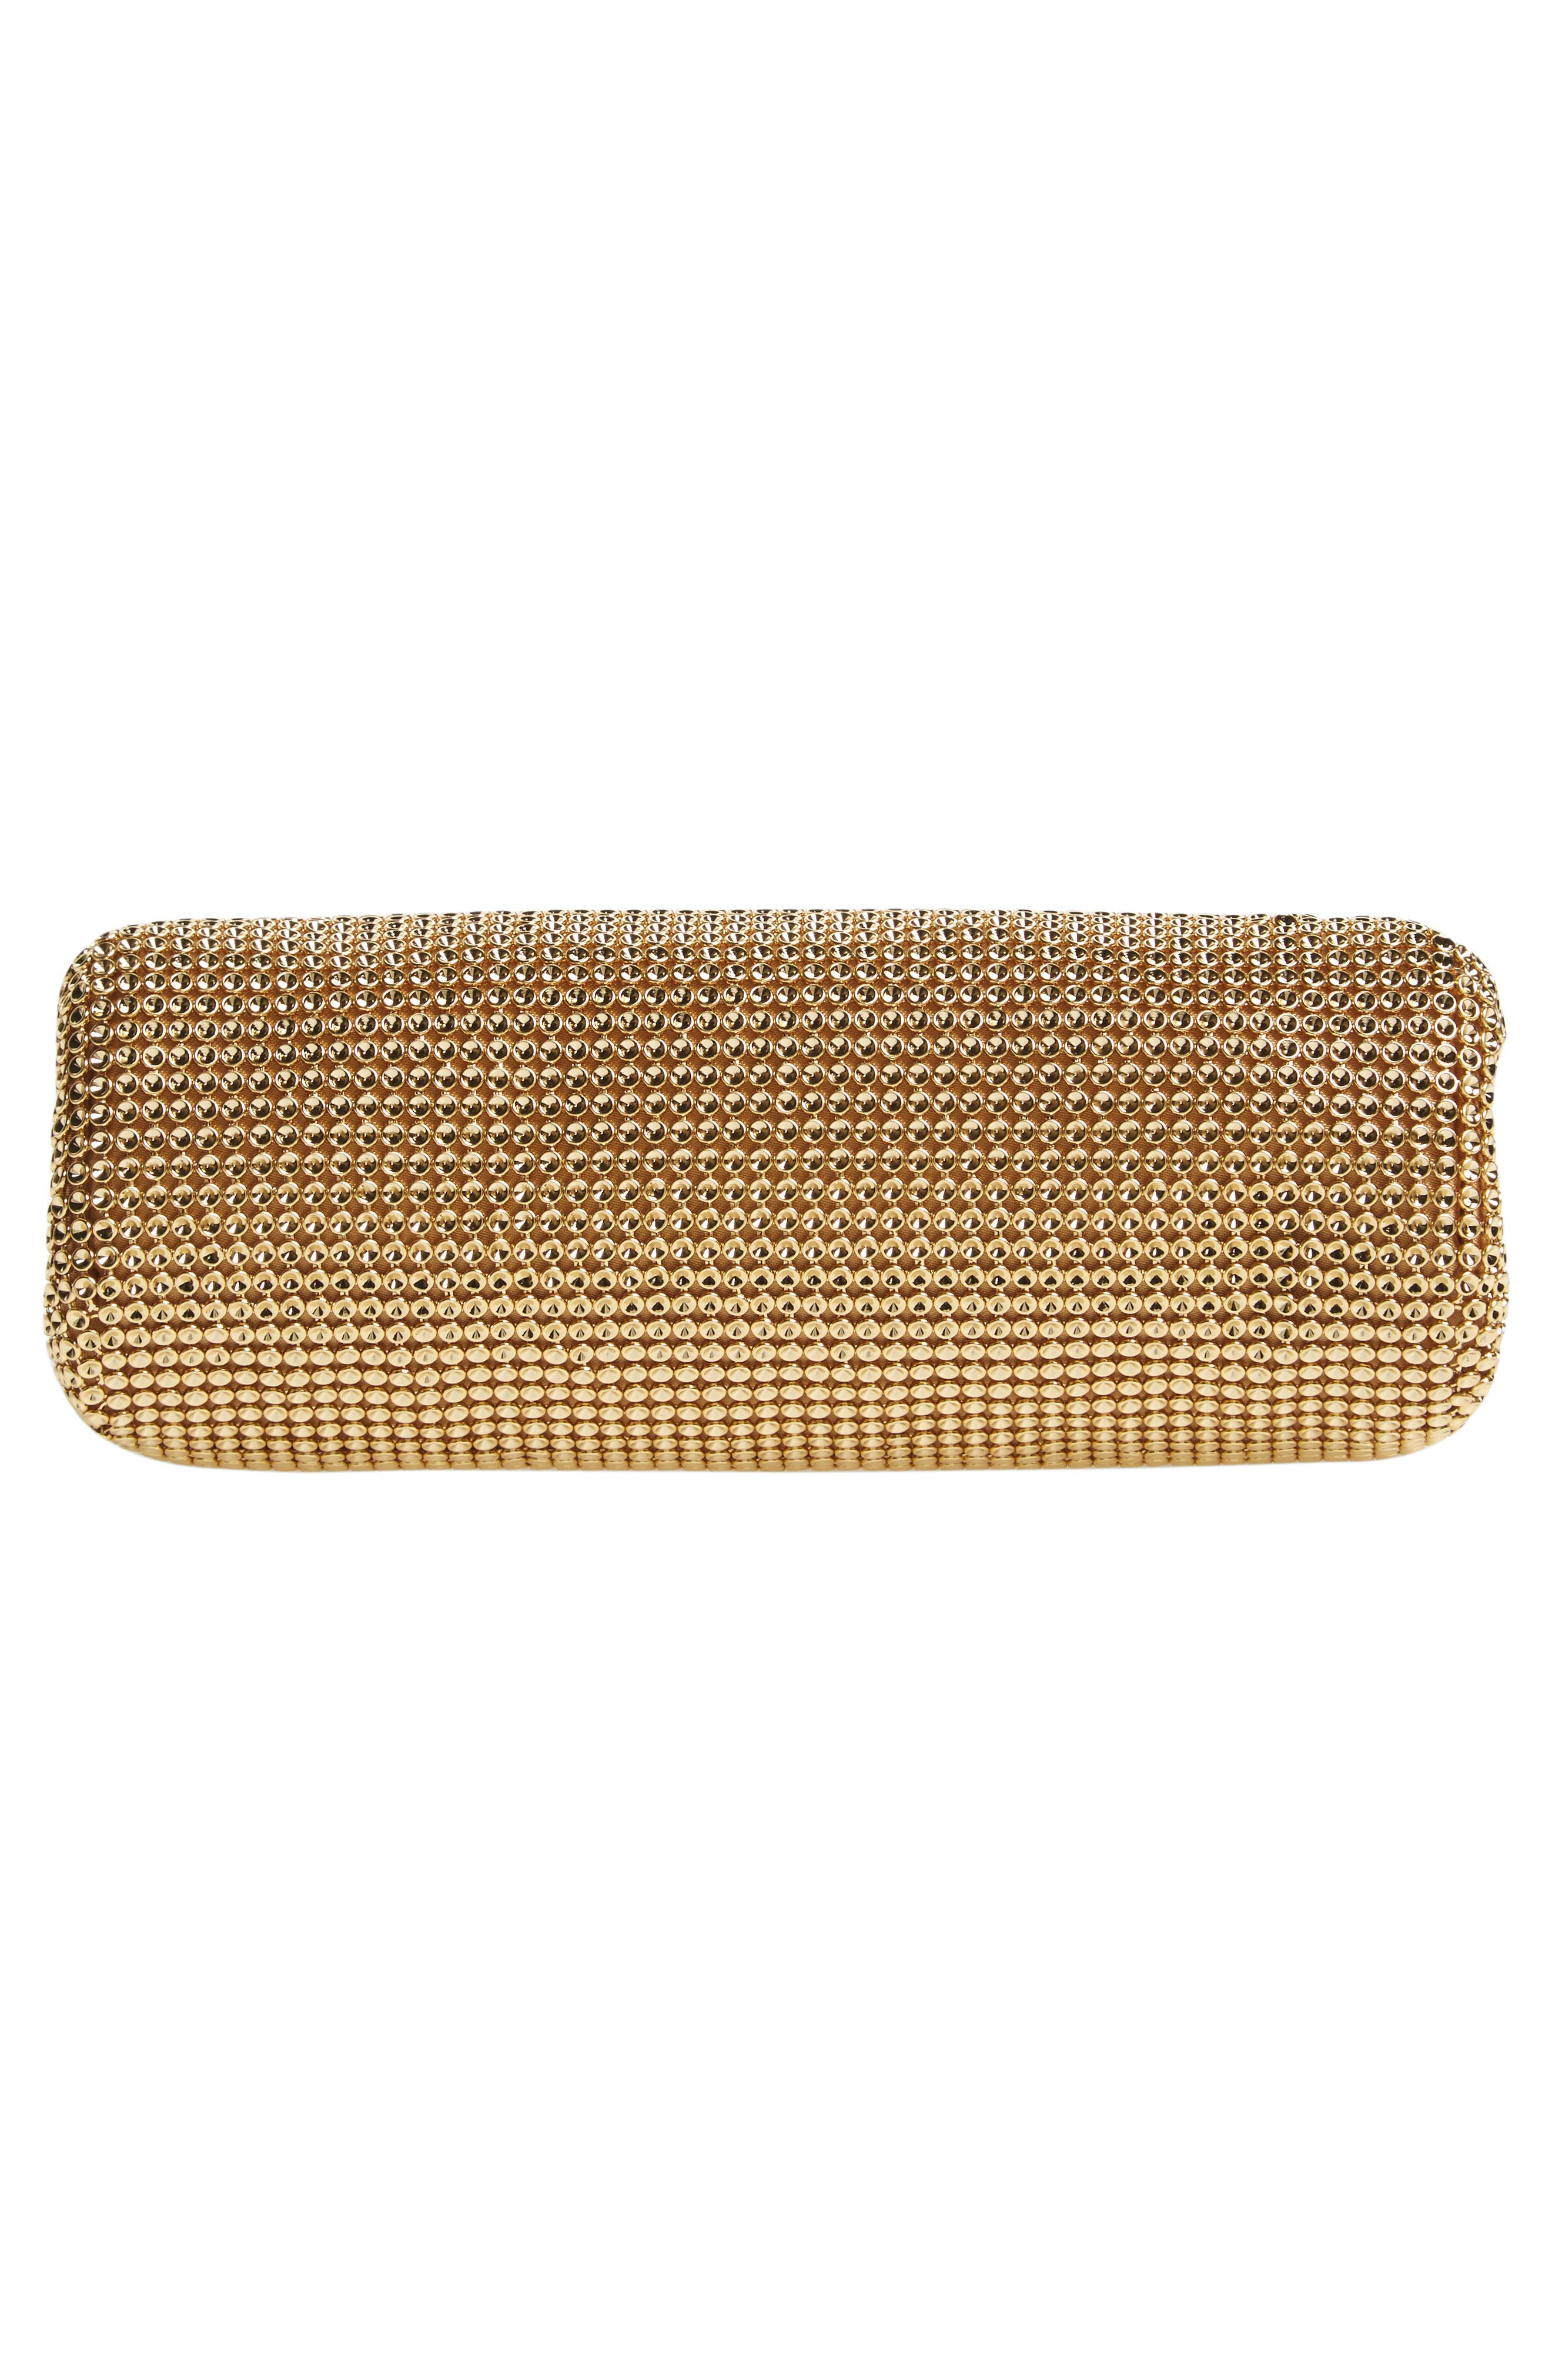 'Crystal' Mesh Clutch,                             Alternate thumbnail 6, color,                             GOLD